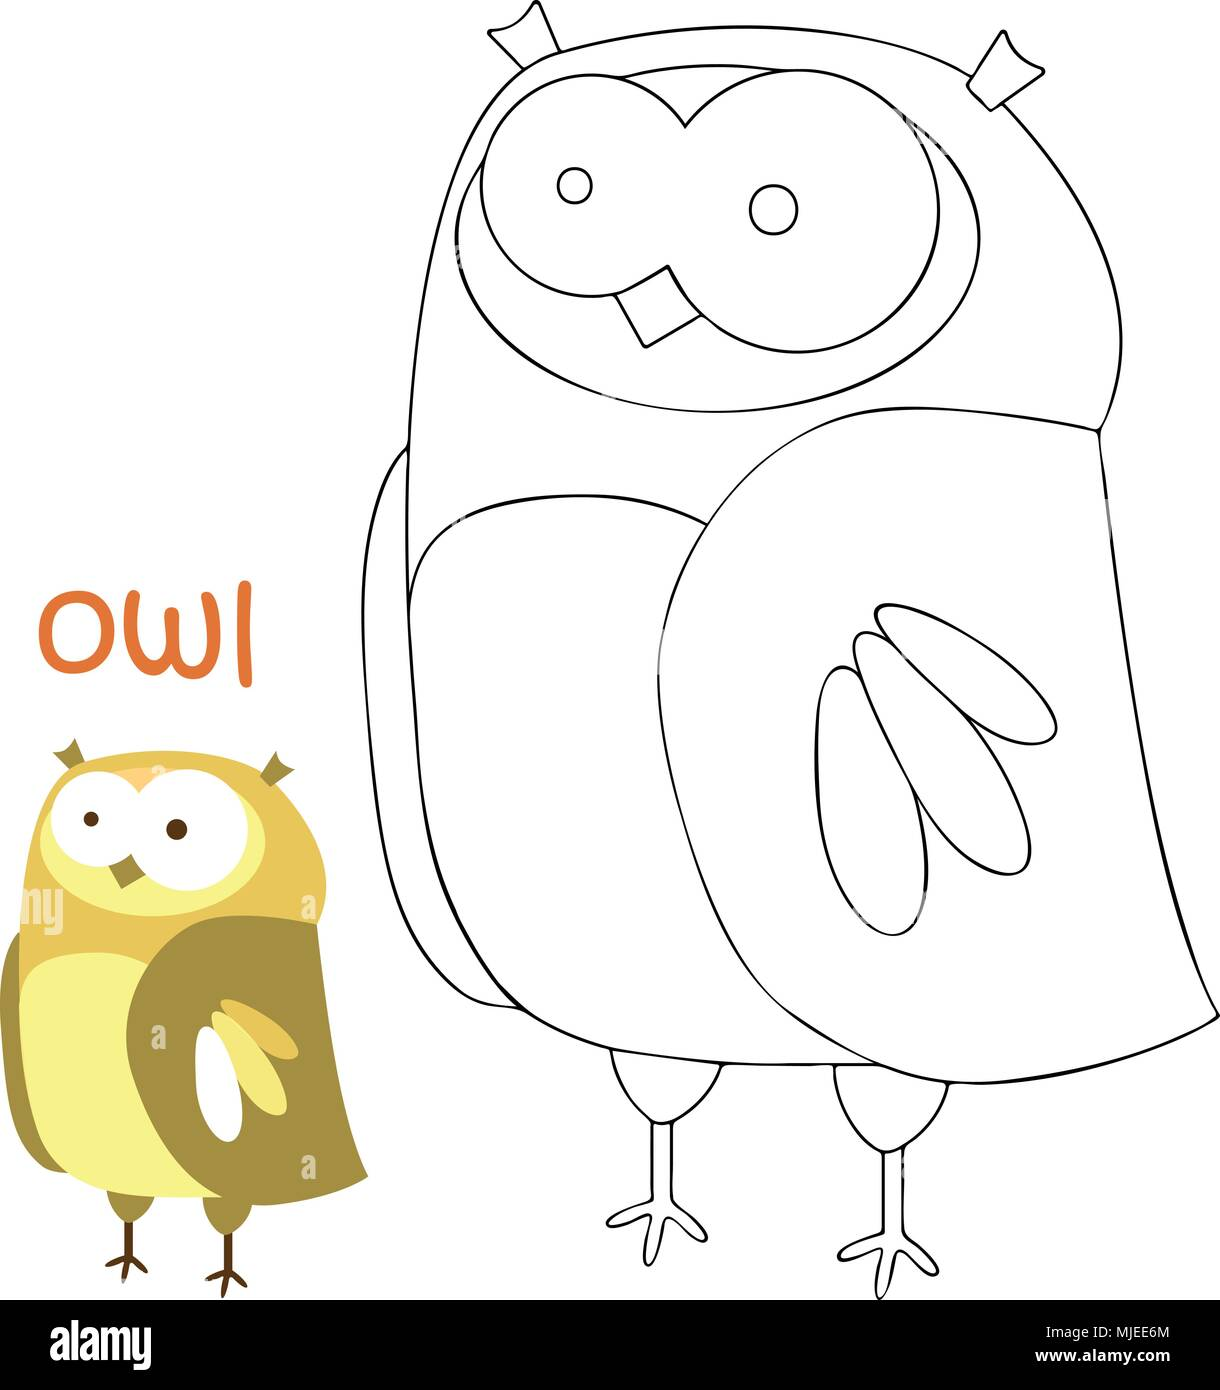 Kids coloring page - owl Stock Vector Art & Illustration, Vector ...